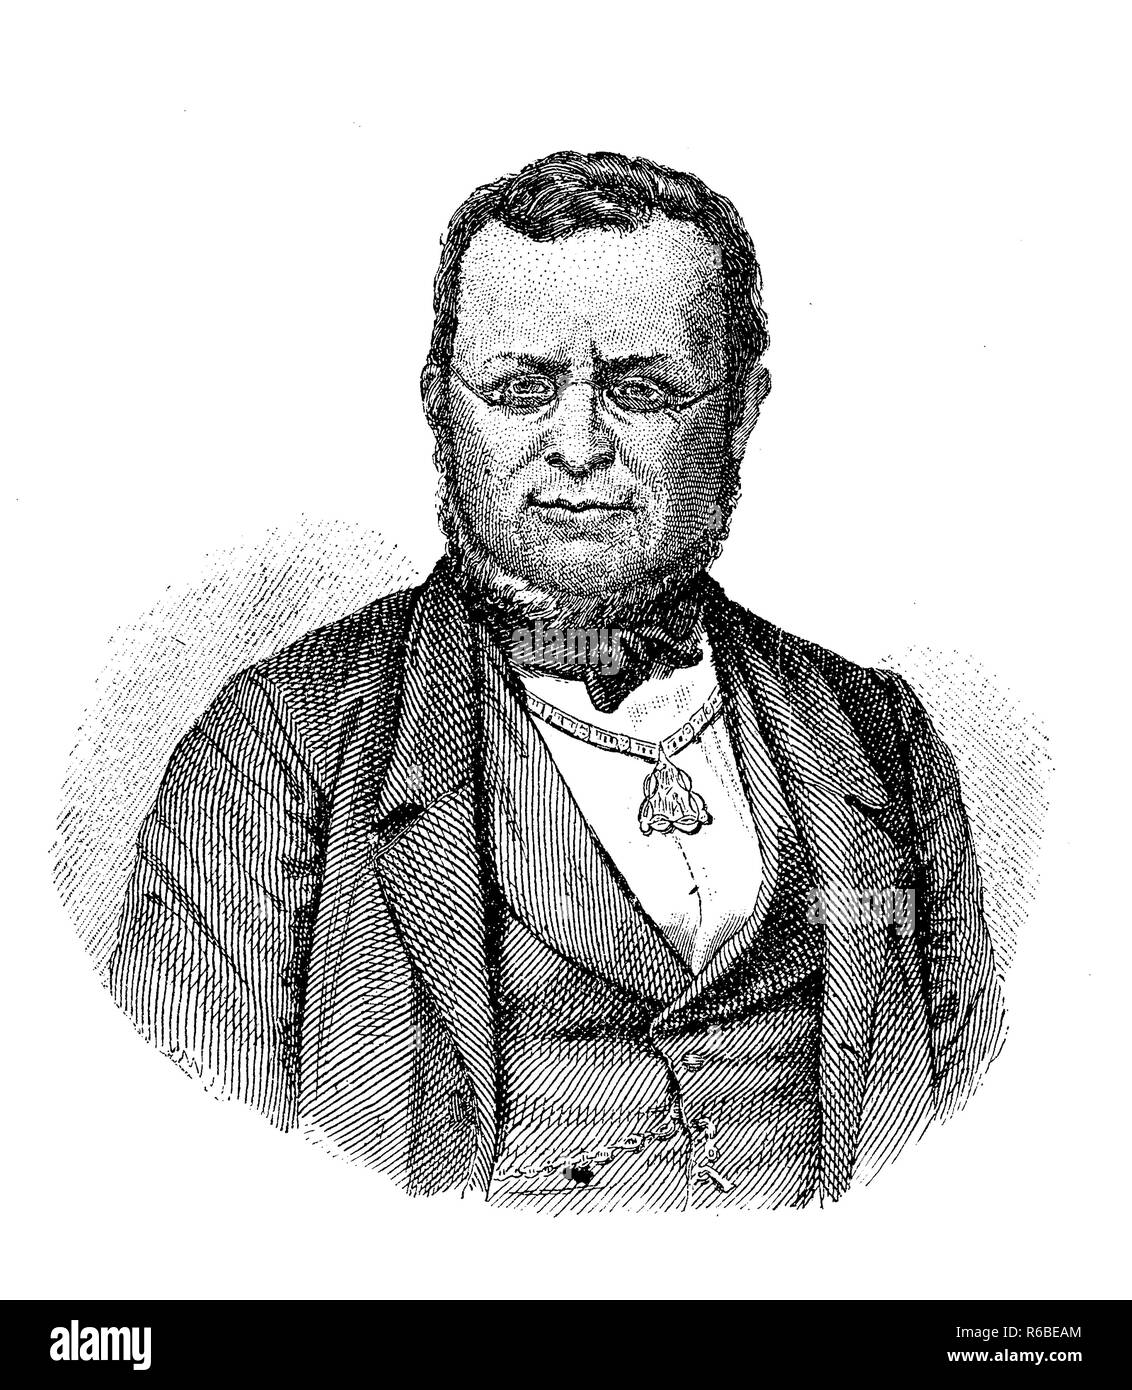 Vintage engraving portrait of Camillo Benso, Count of Cavour (1810 - 1861) ,  Italian statesman,  Prime Minister of the Kingdom of Piedmont-Sardinia and  Prime Minister of Italy - Stock Image